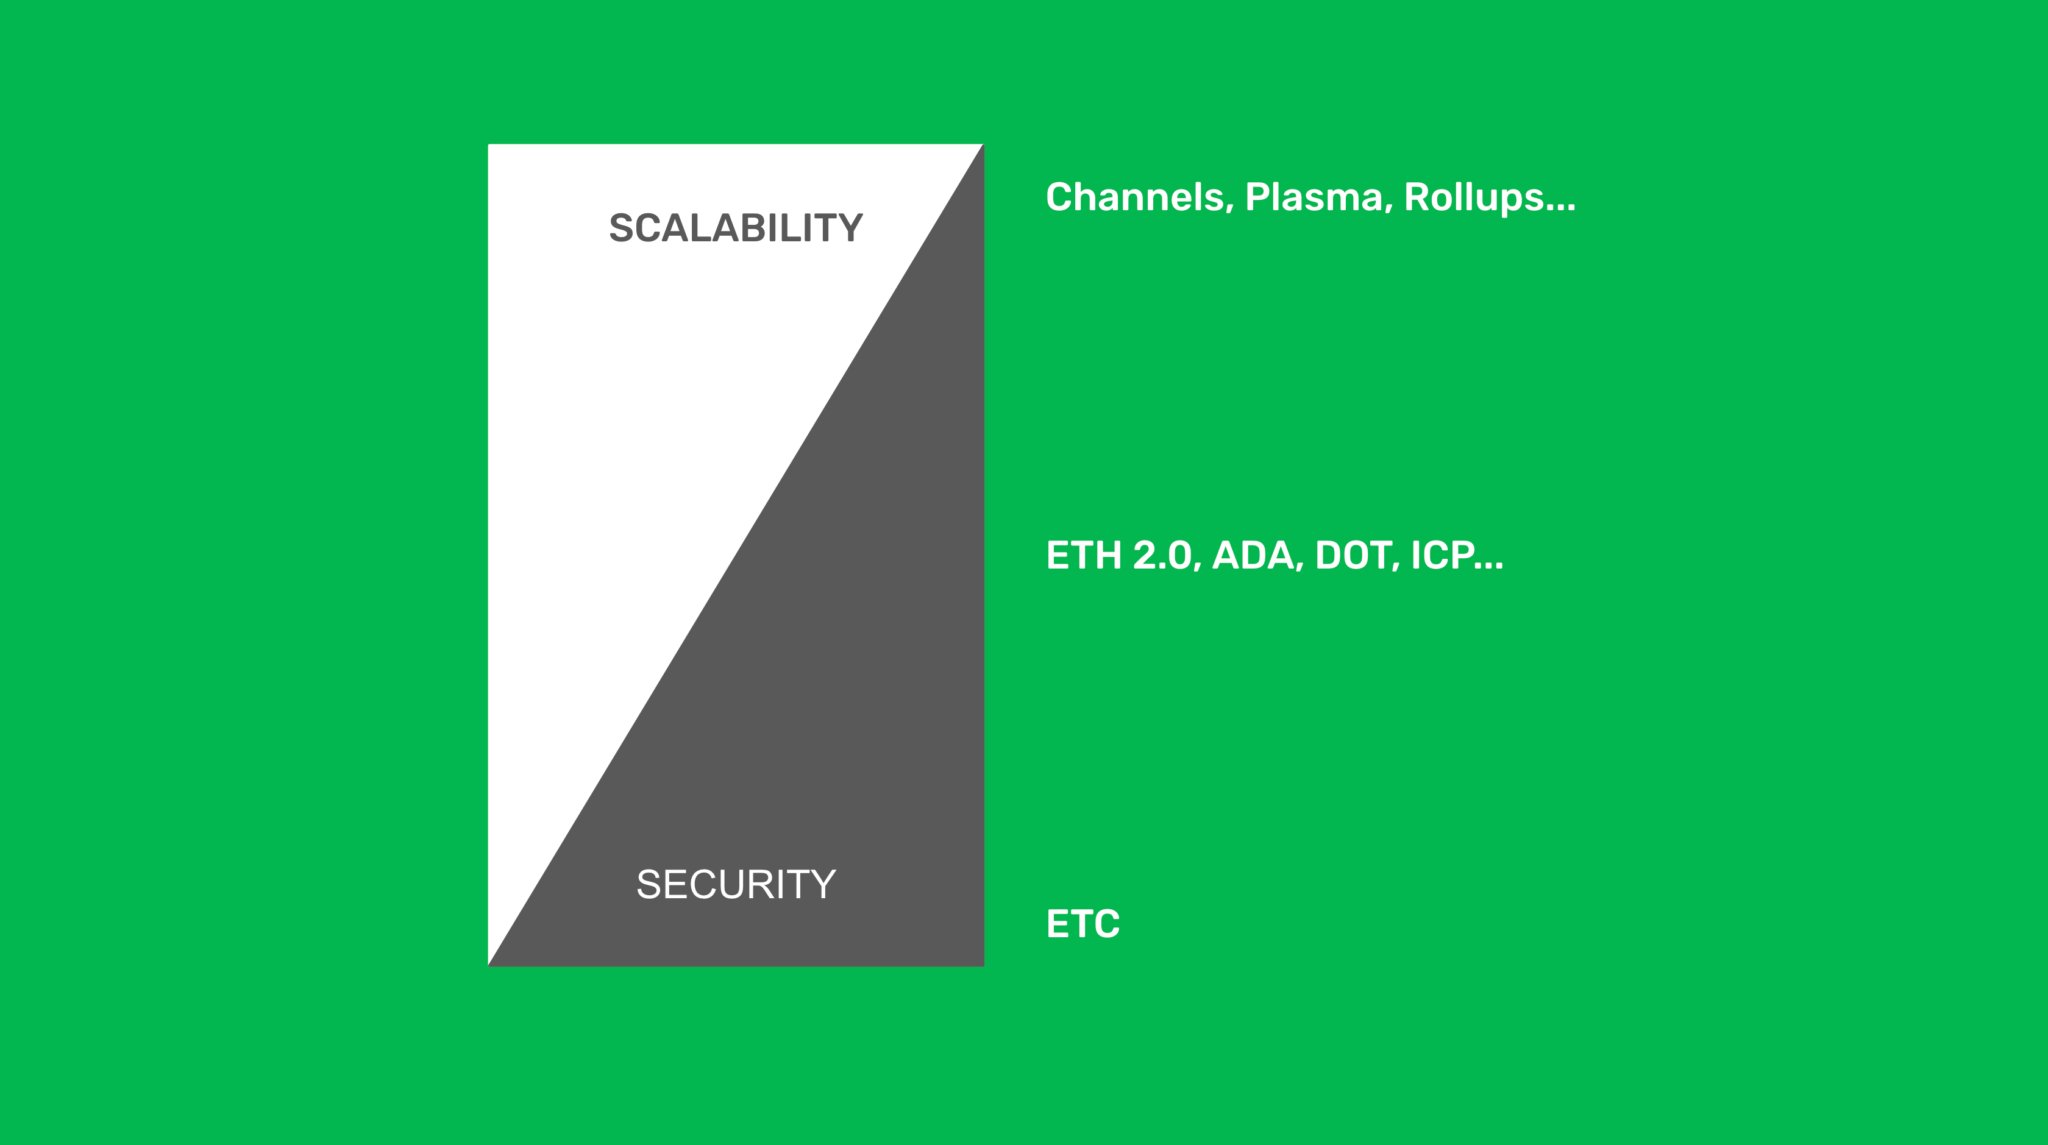 ETC and the security vs scalability tradeoff.